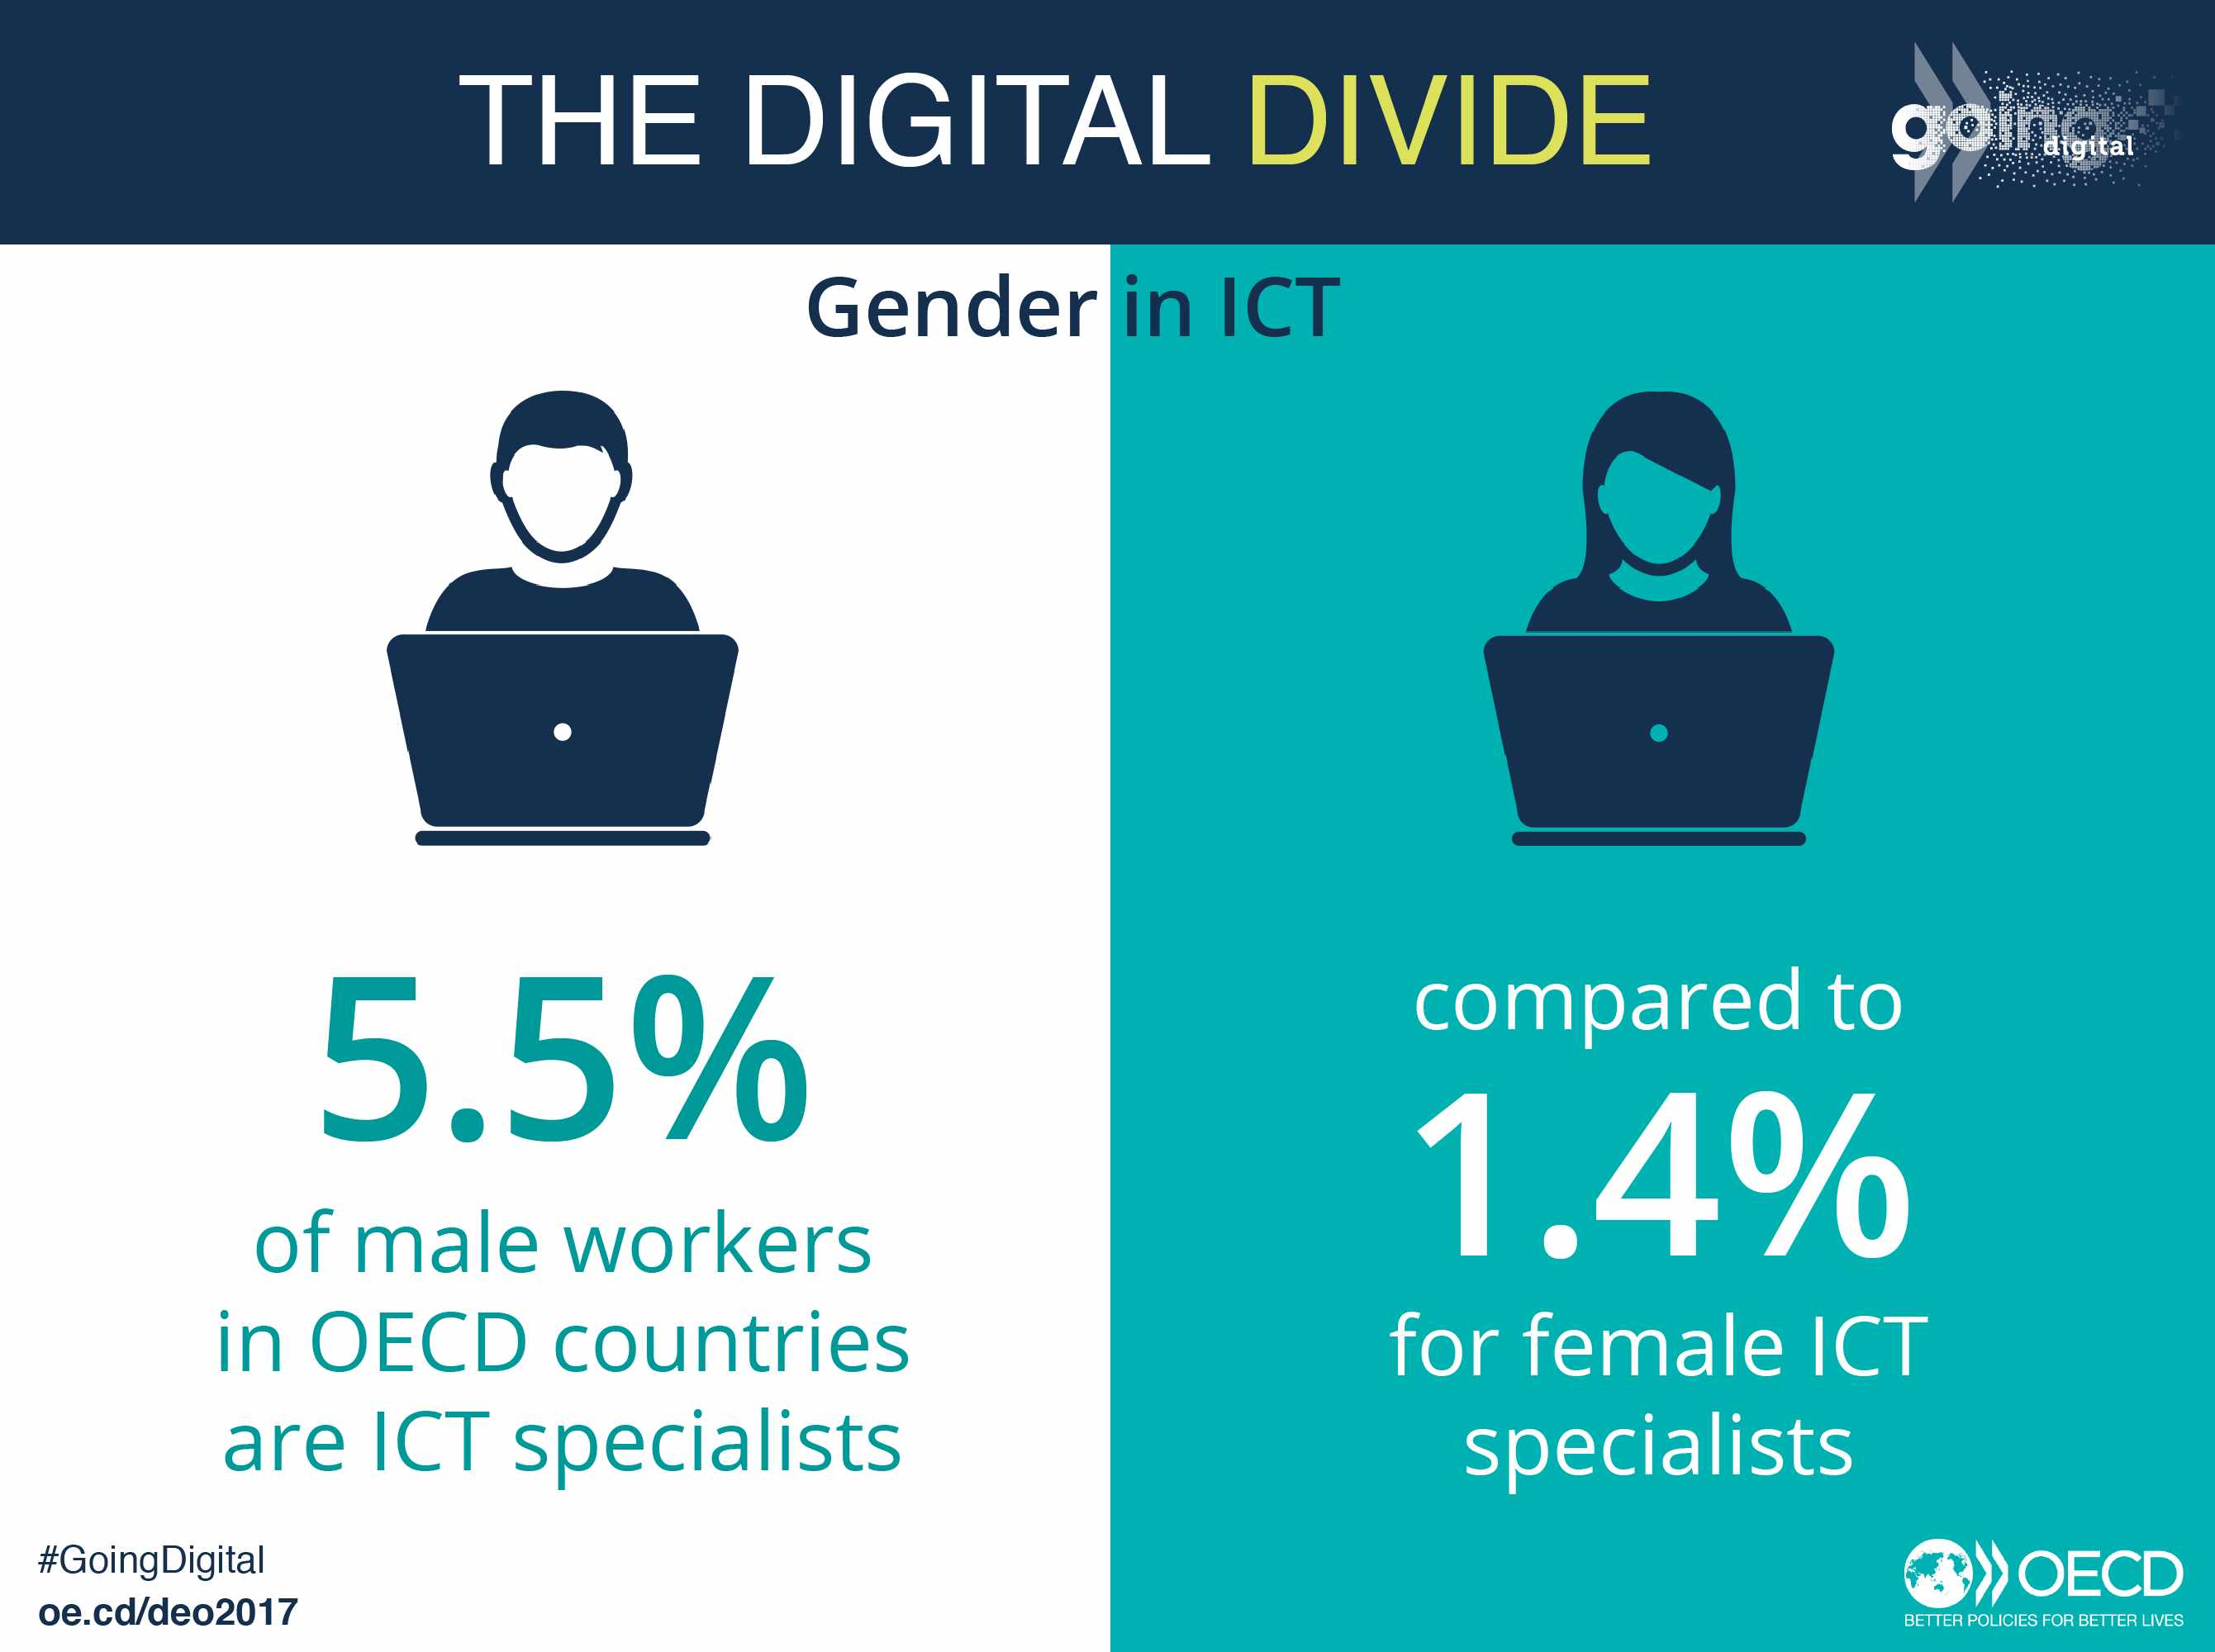 Gender divide in ICT